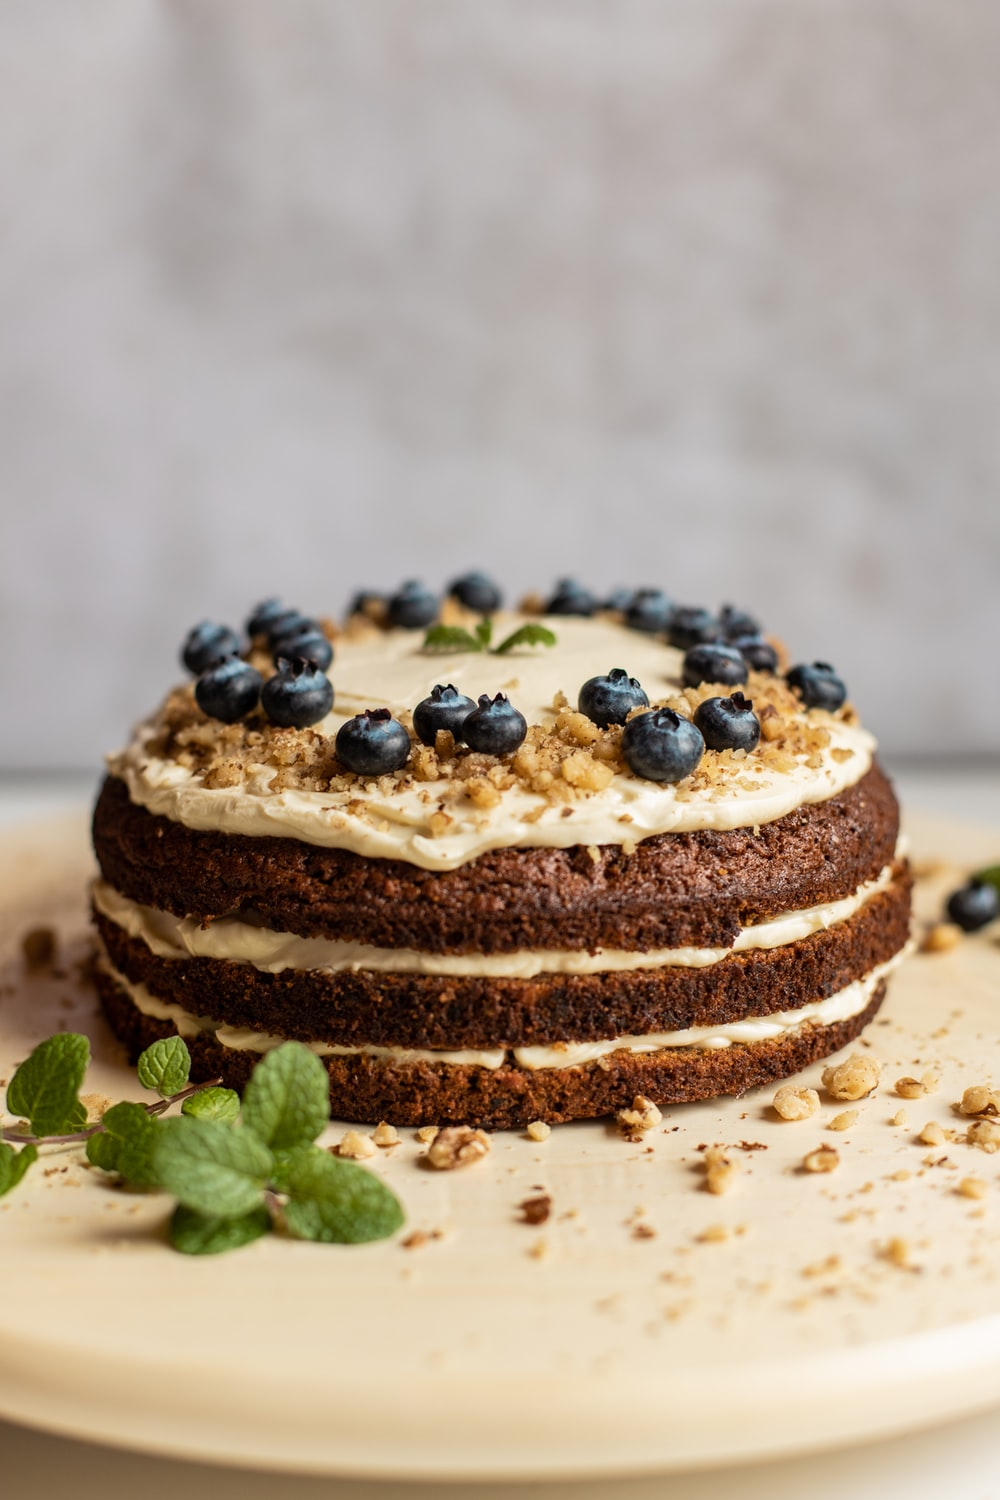 brown and black pastry with blue berries on white ceramic plate